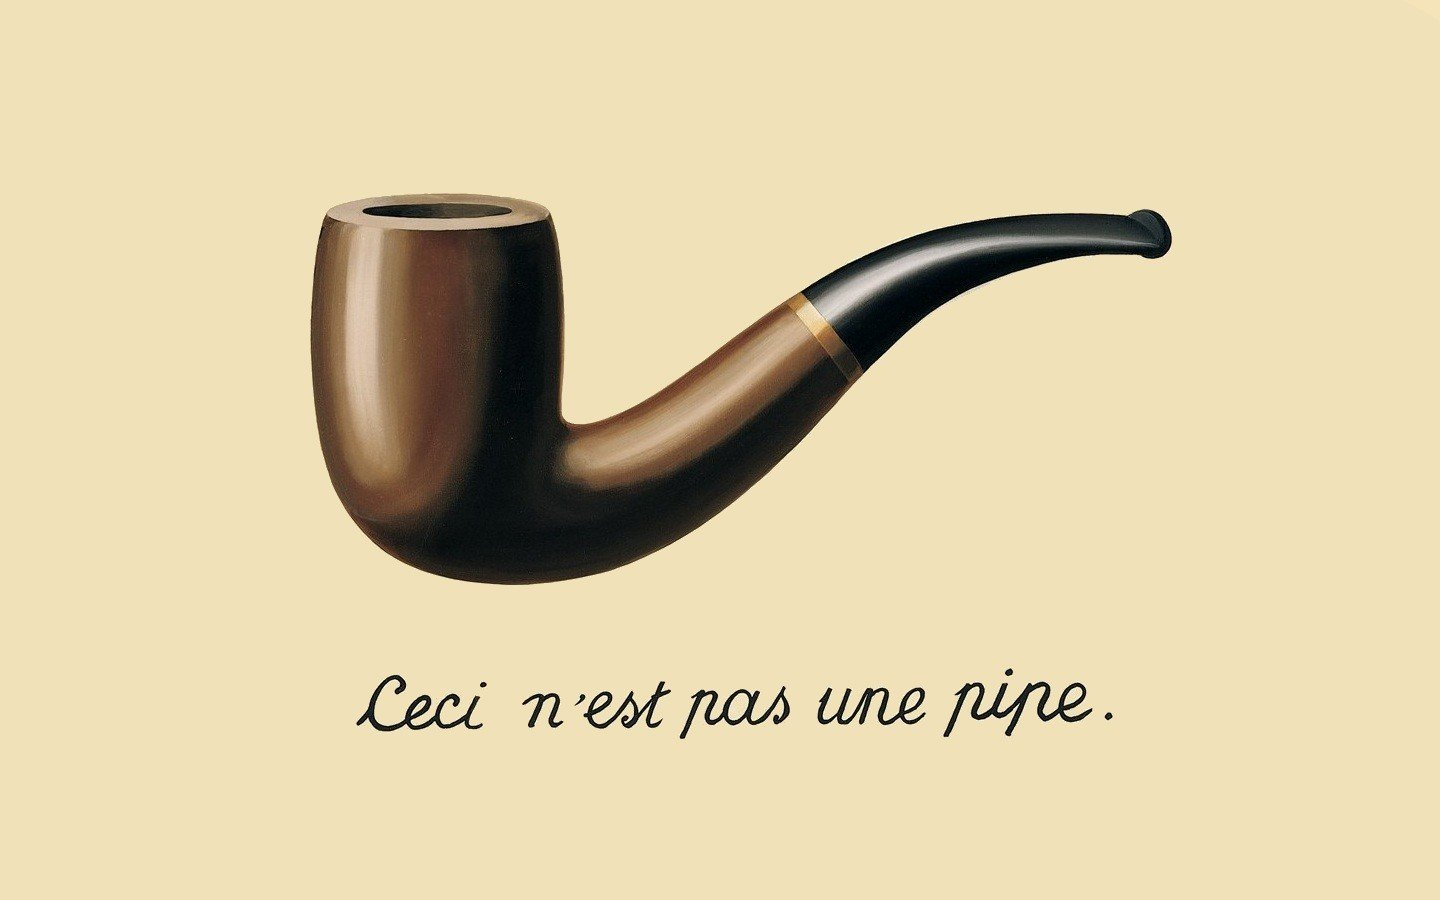 pipes, René Magritte, Painting, Minimalism Wallpaper